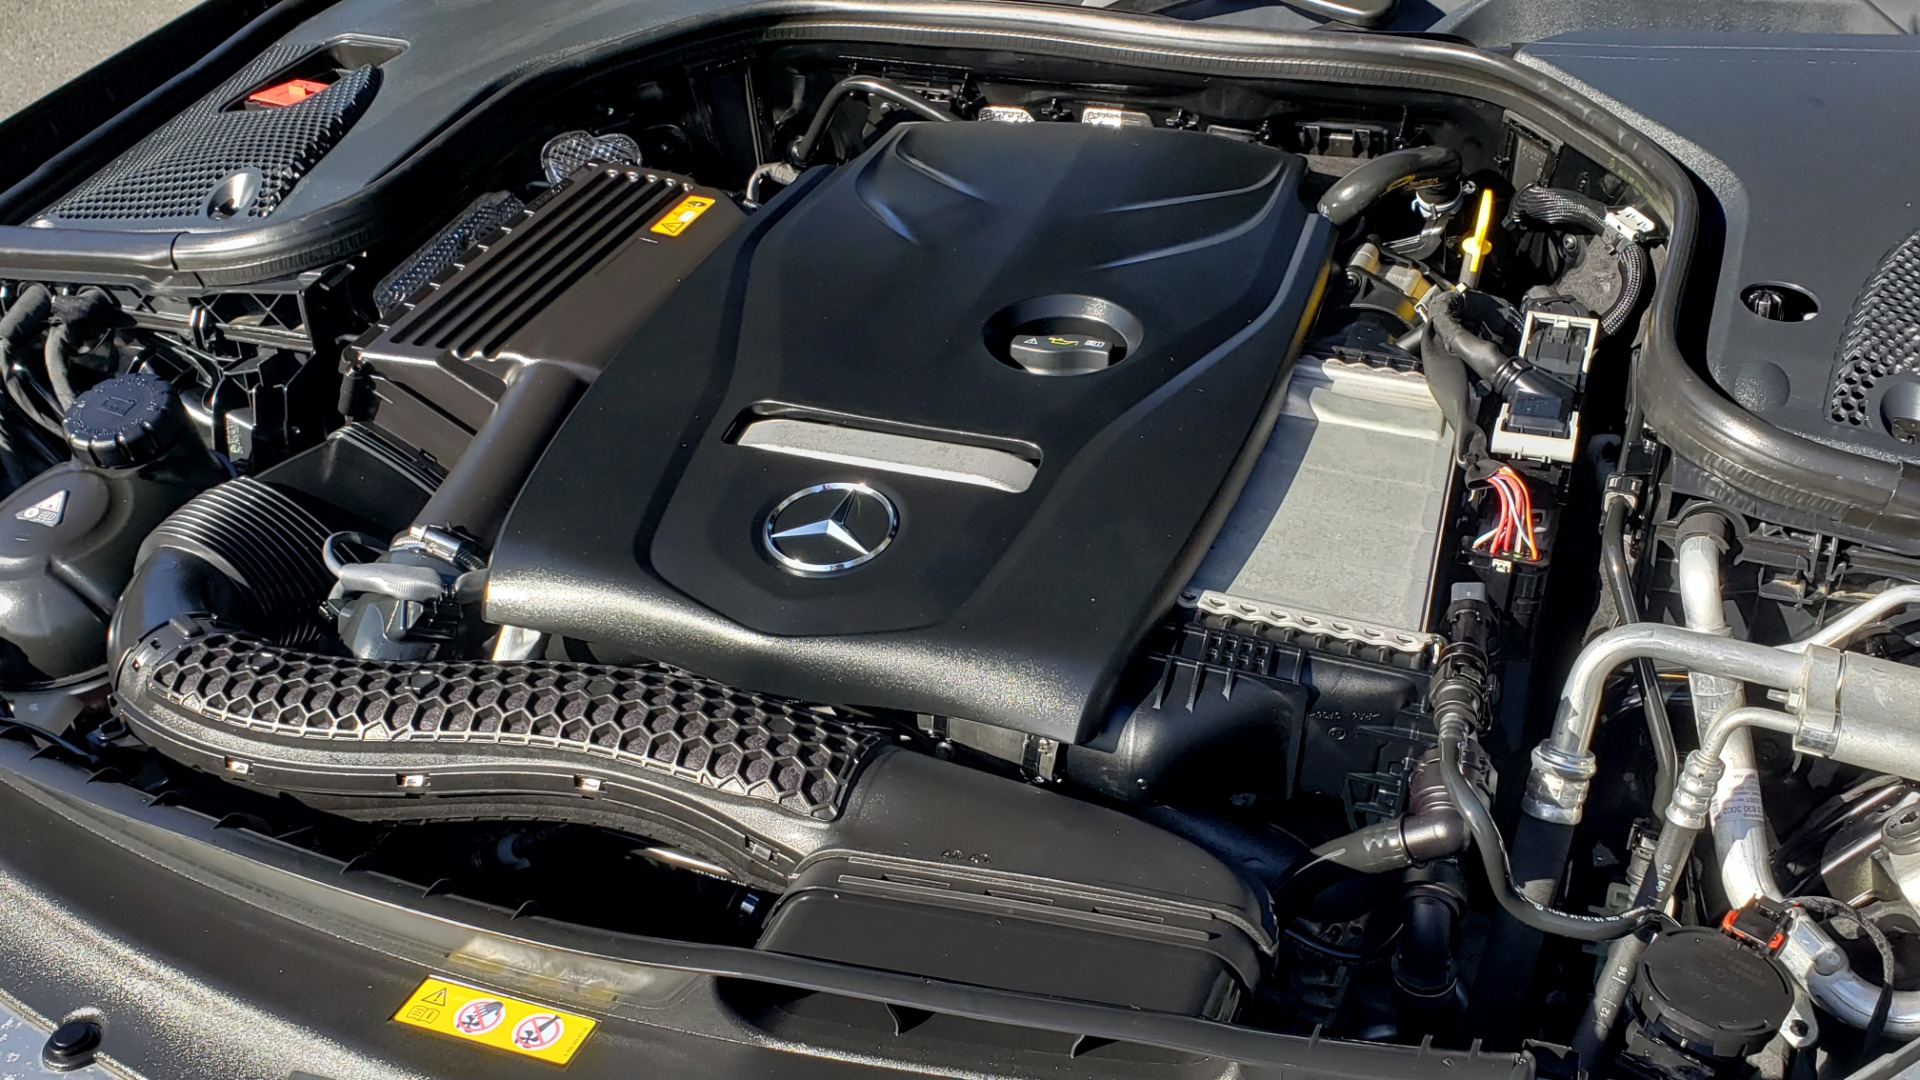 Used 2017 Mercedes-Benz E-CLASS E 300 PREMIUM / NAV / SUNROOF / BURMESTER / HTD STS / REARVIEW for sale Sold at Formula Imports in Charlotte NC 28227 11